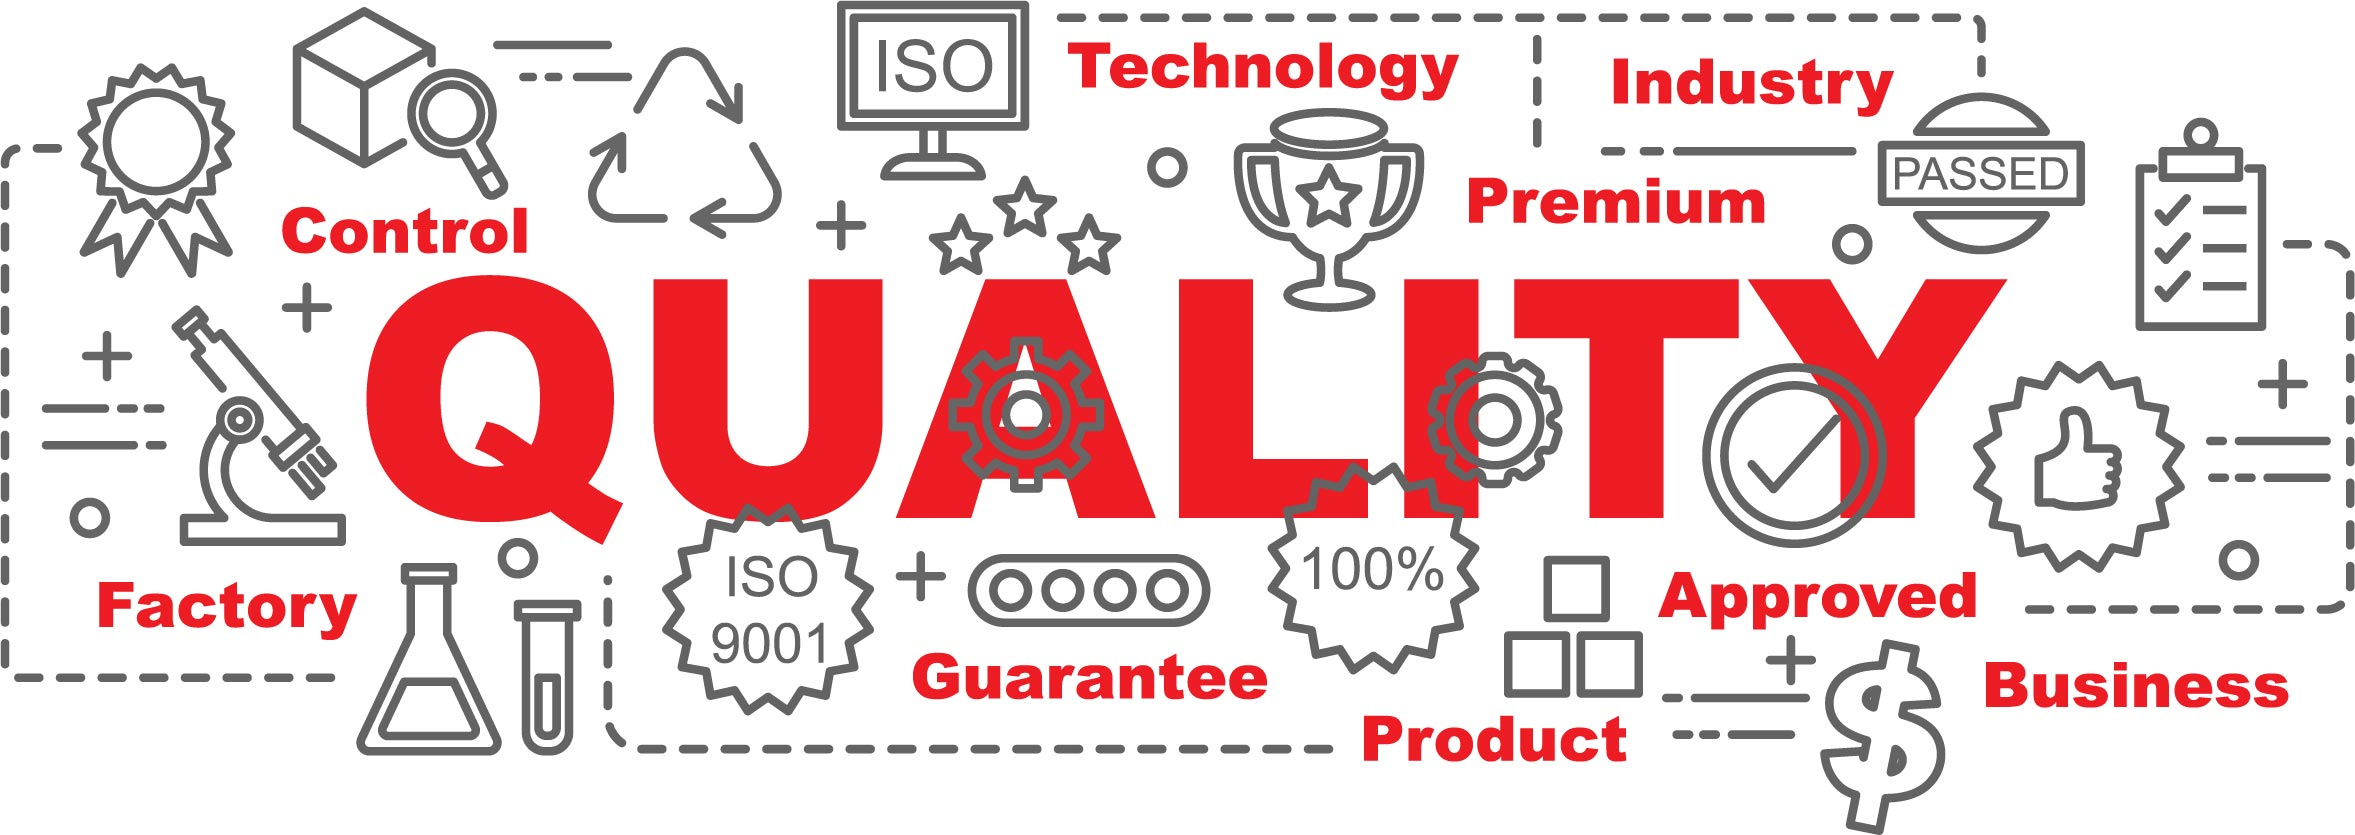 100% quality guarantee to employers